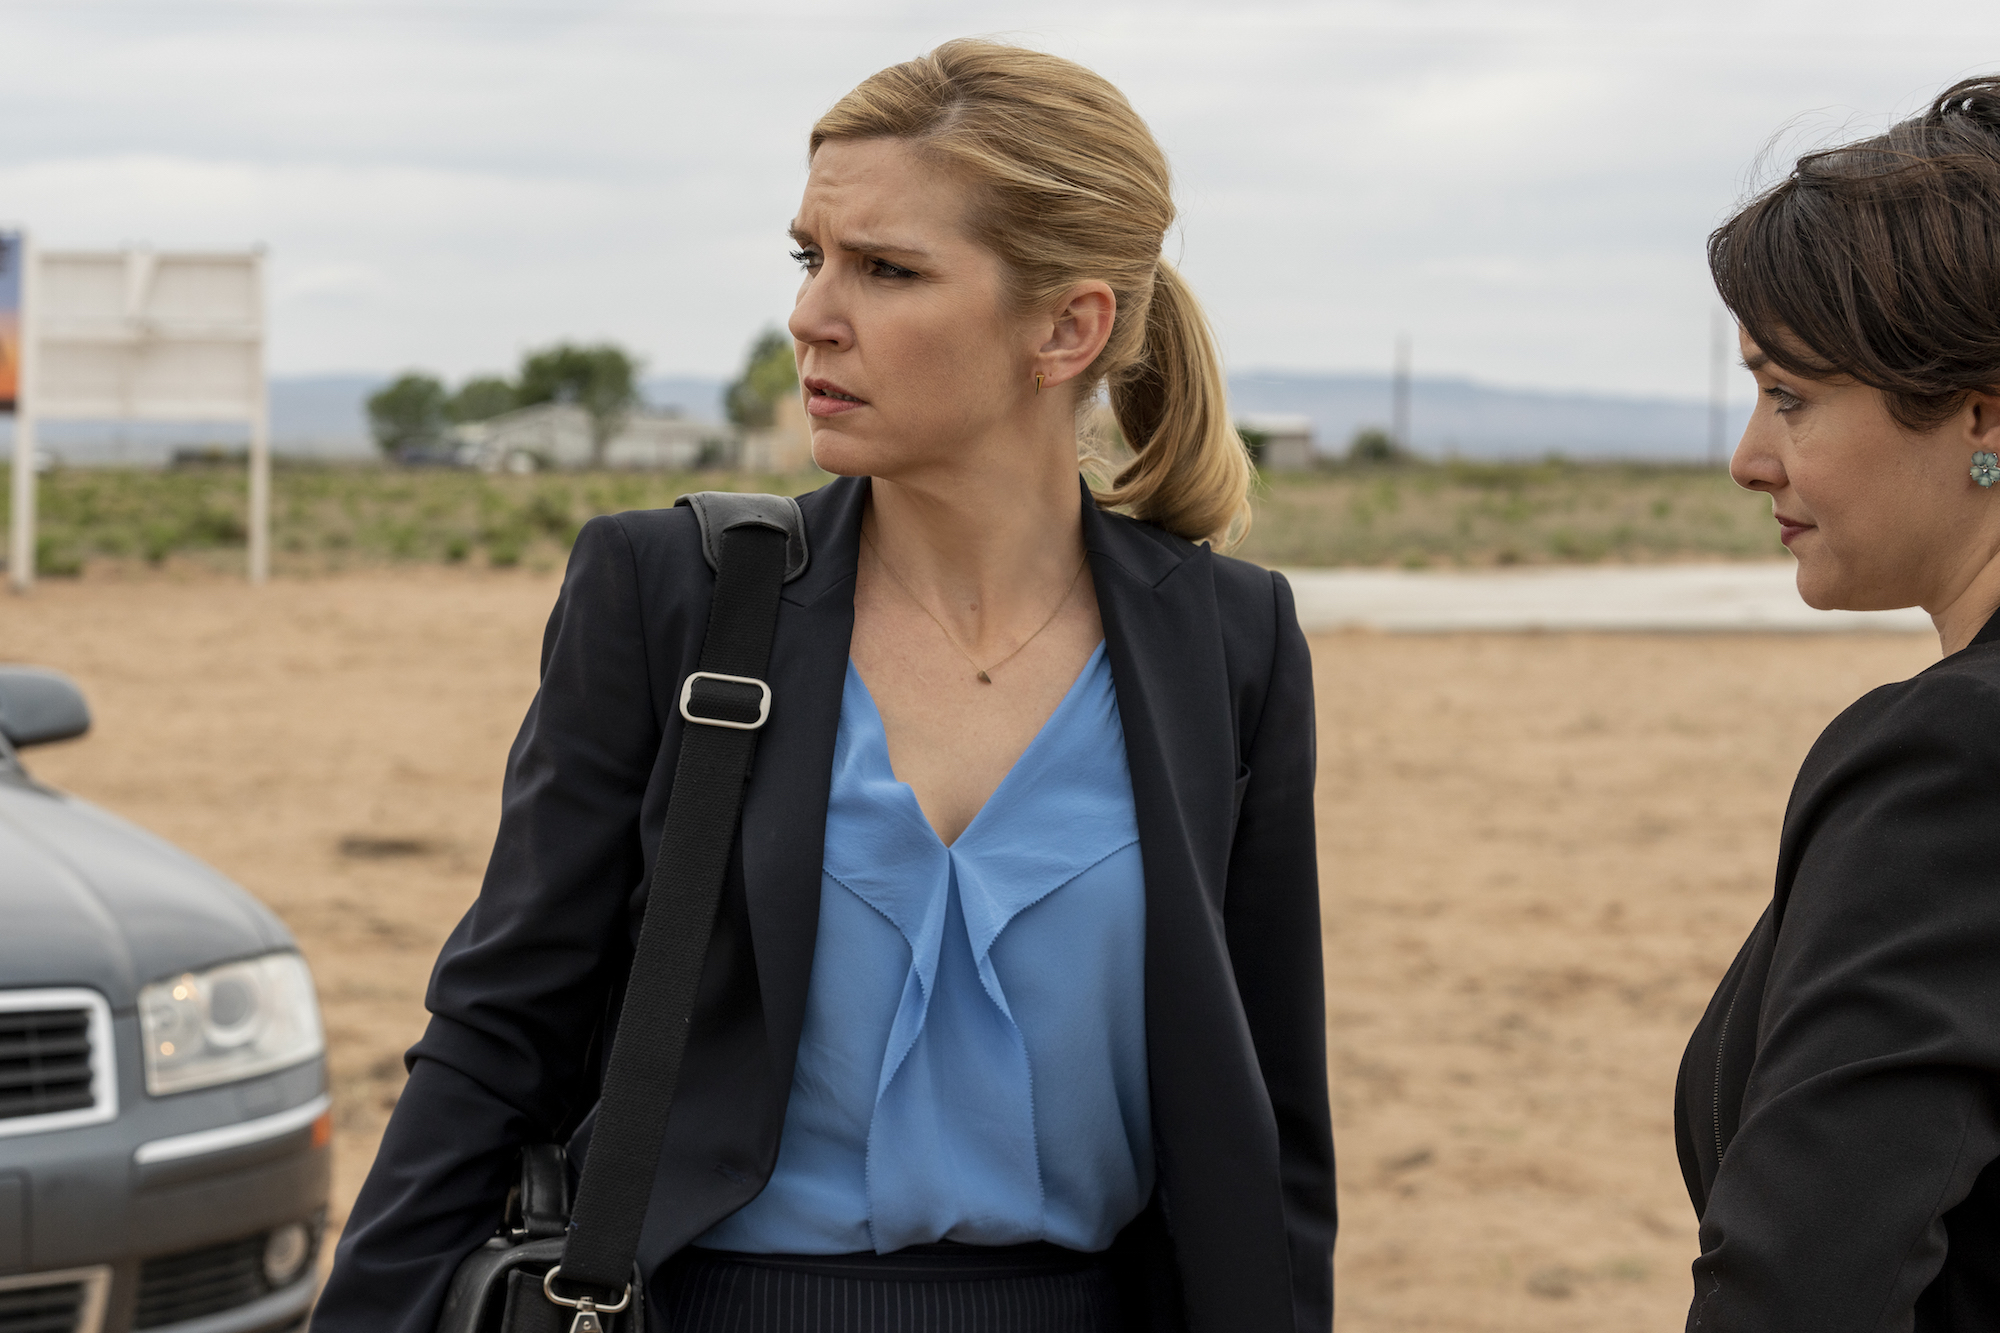 Rhea Seehorn as Kim Wexler - Better Call Saul _ Season 5, Episode 3 - Photo Credit: Greg Lewis/AMC/Sony Pictures Television